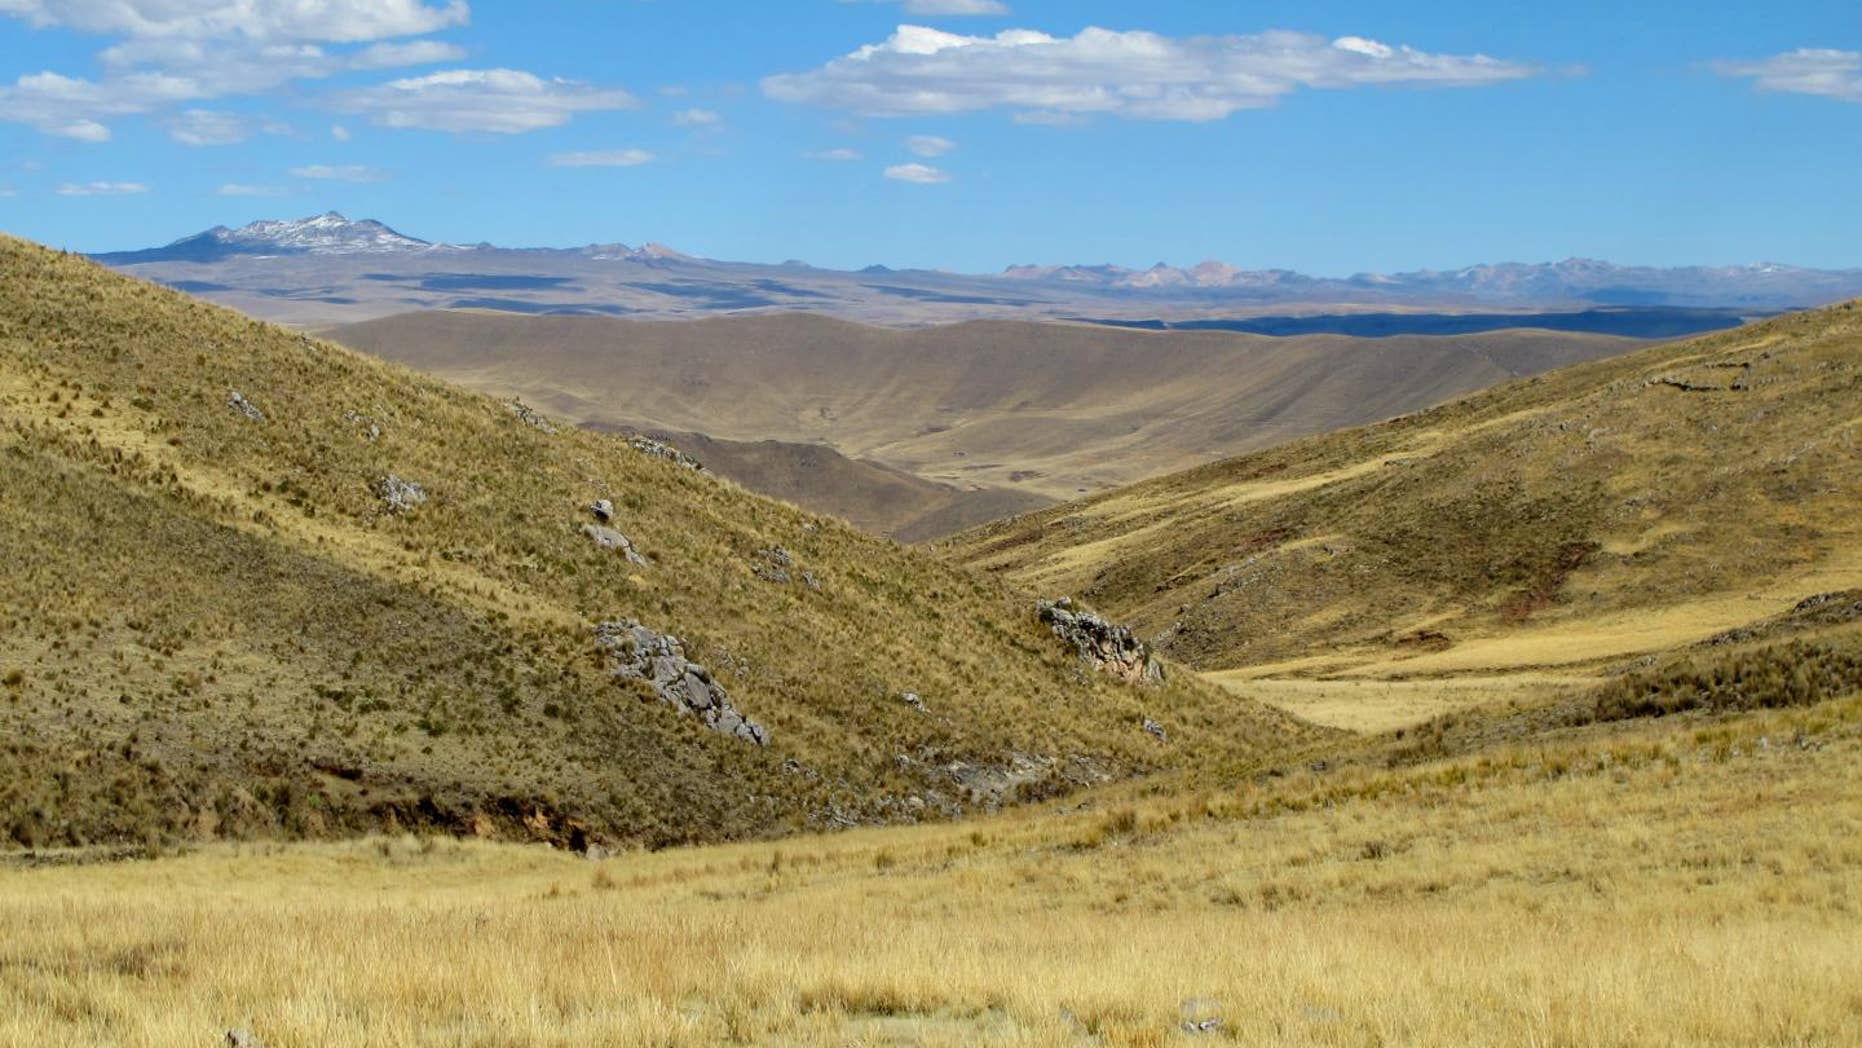 Intrepid hunter-gatherer families permanently occupied high-elevation environments of the Andes Mountains at least 7,000 years ago, according to new research led by University of Wyoming scientists. (Lauren A. Hayes)